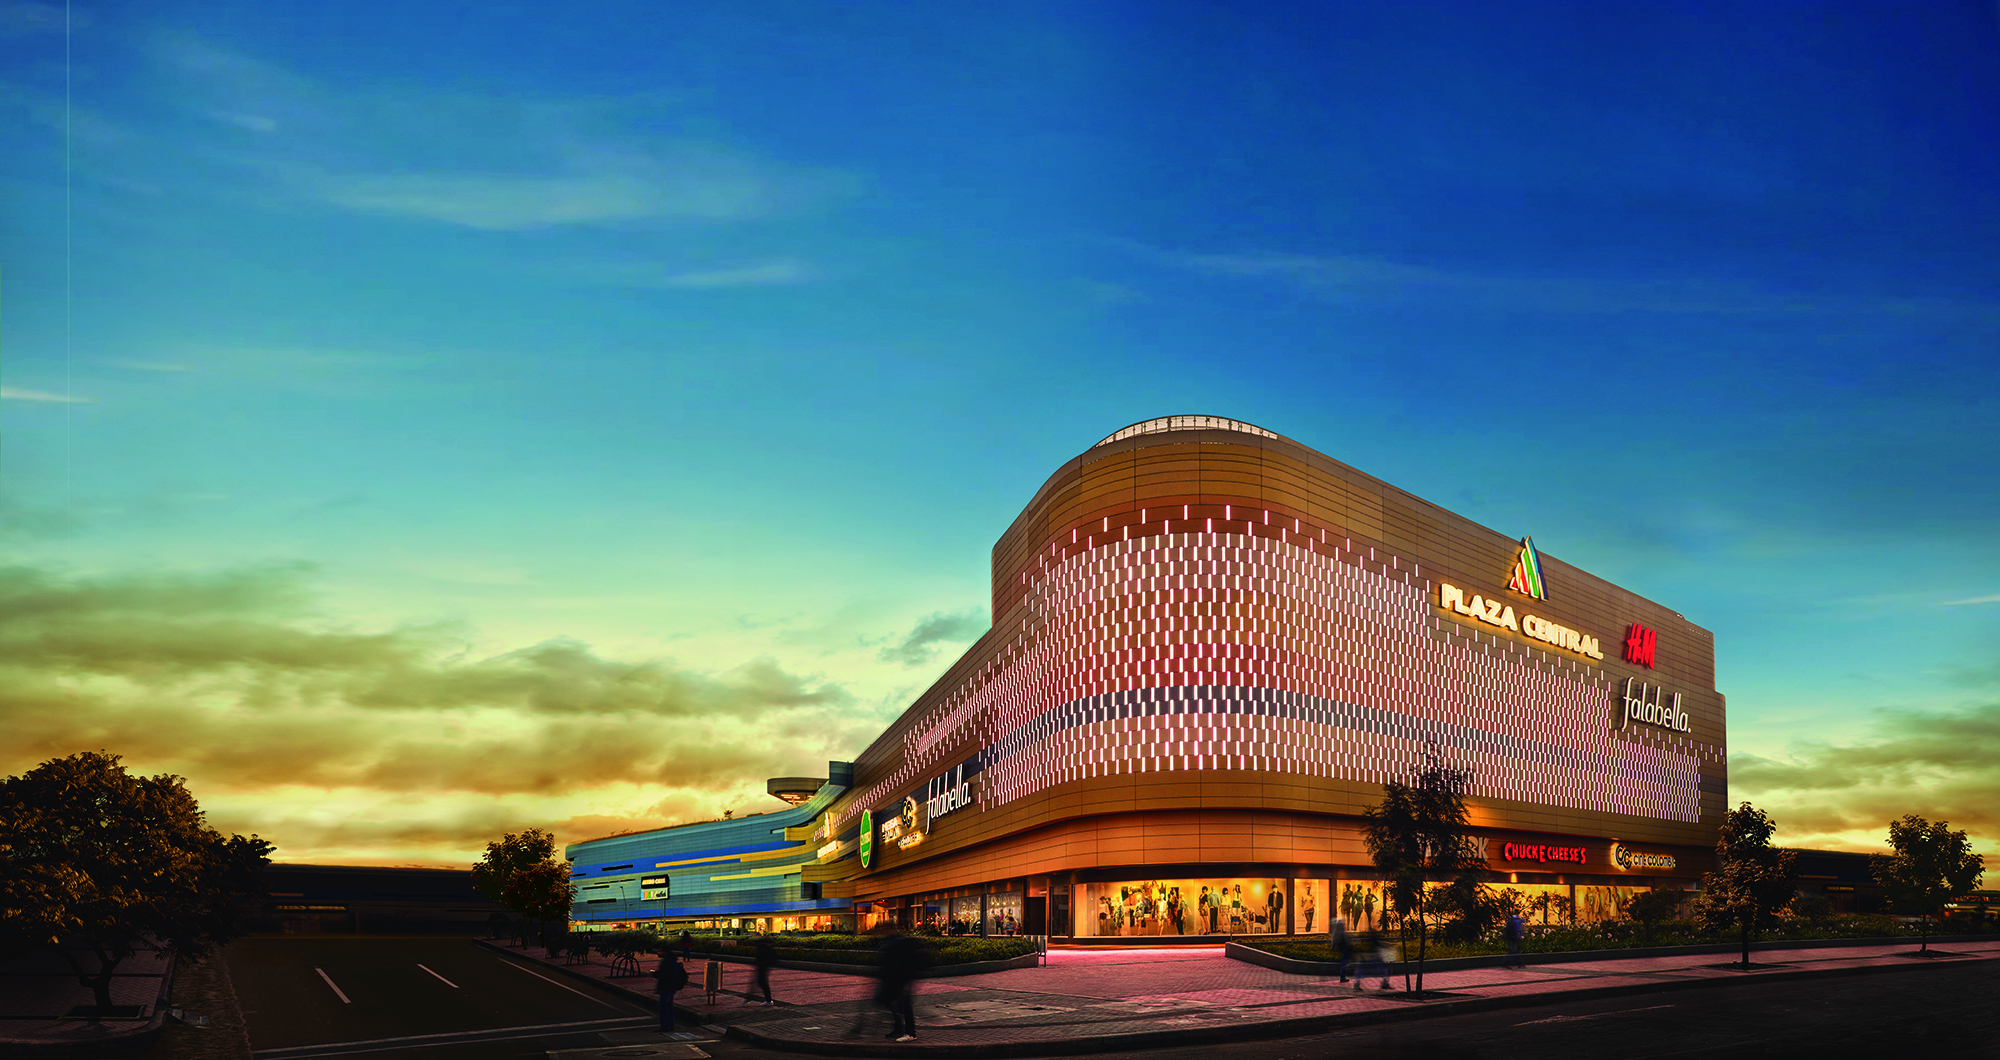 Pei consolidates its 100% ownership of   Plaza Central Shopping Center